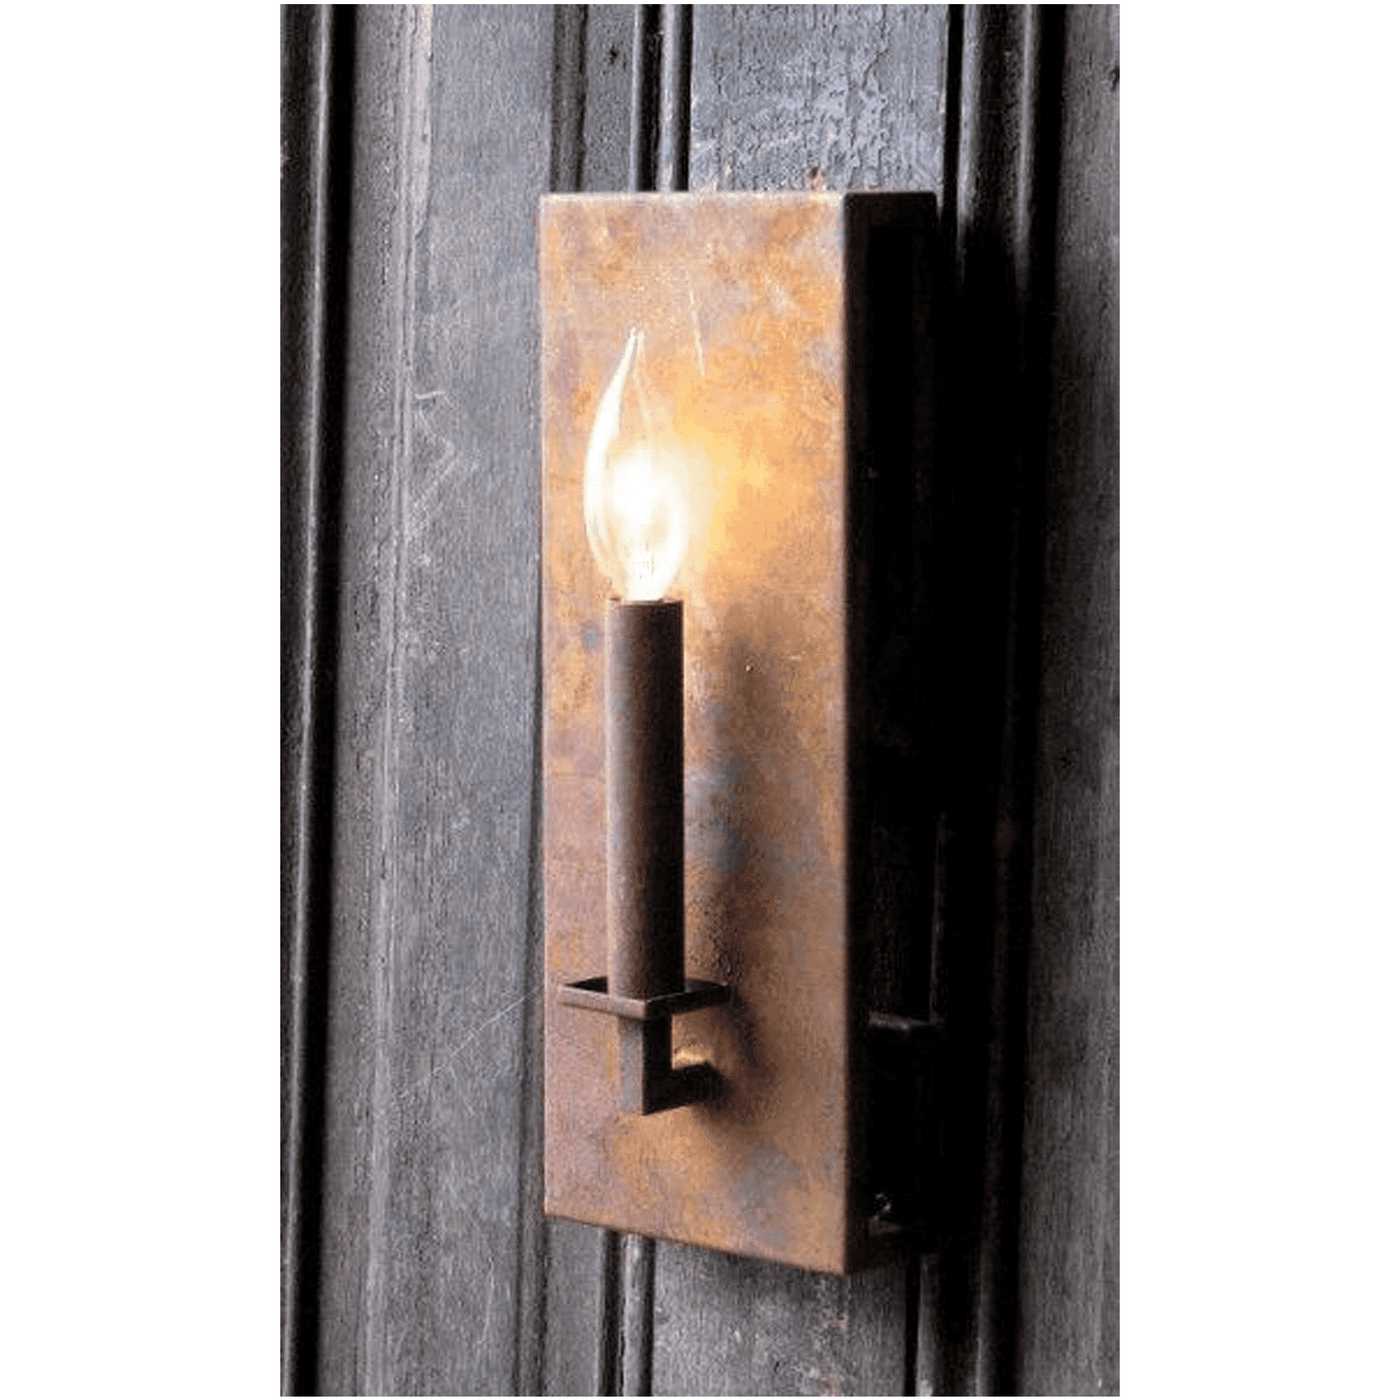 Rustic Iron Candle Light Wall Sconce Our Boat House